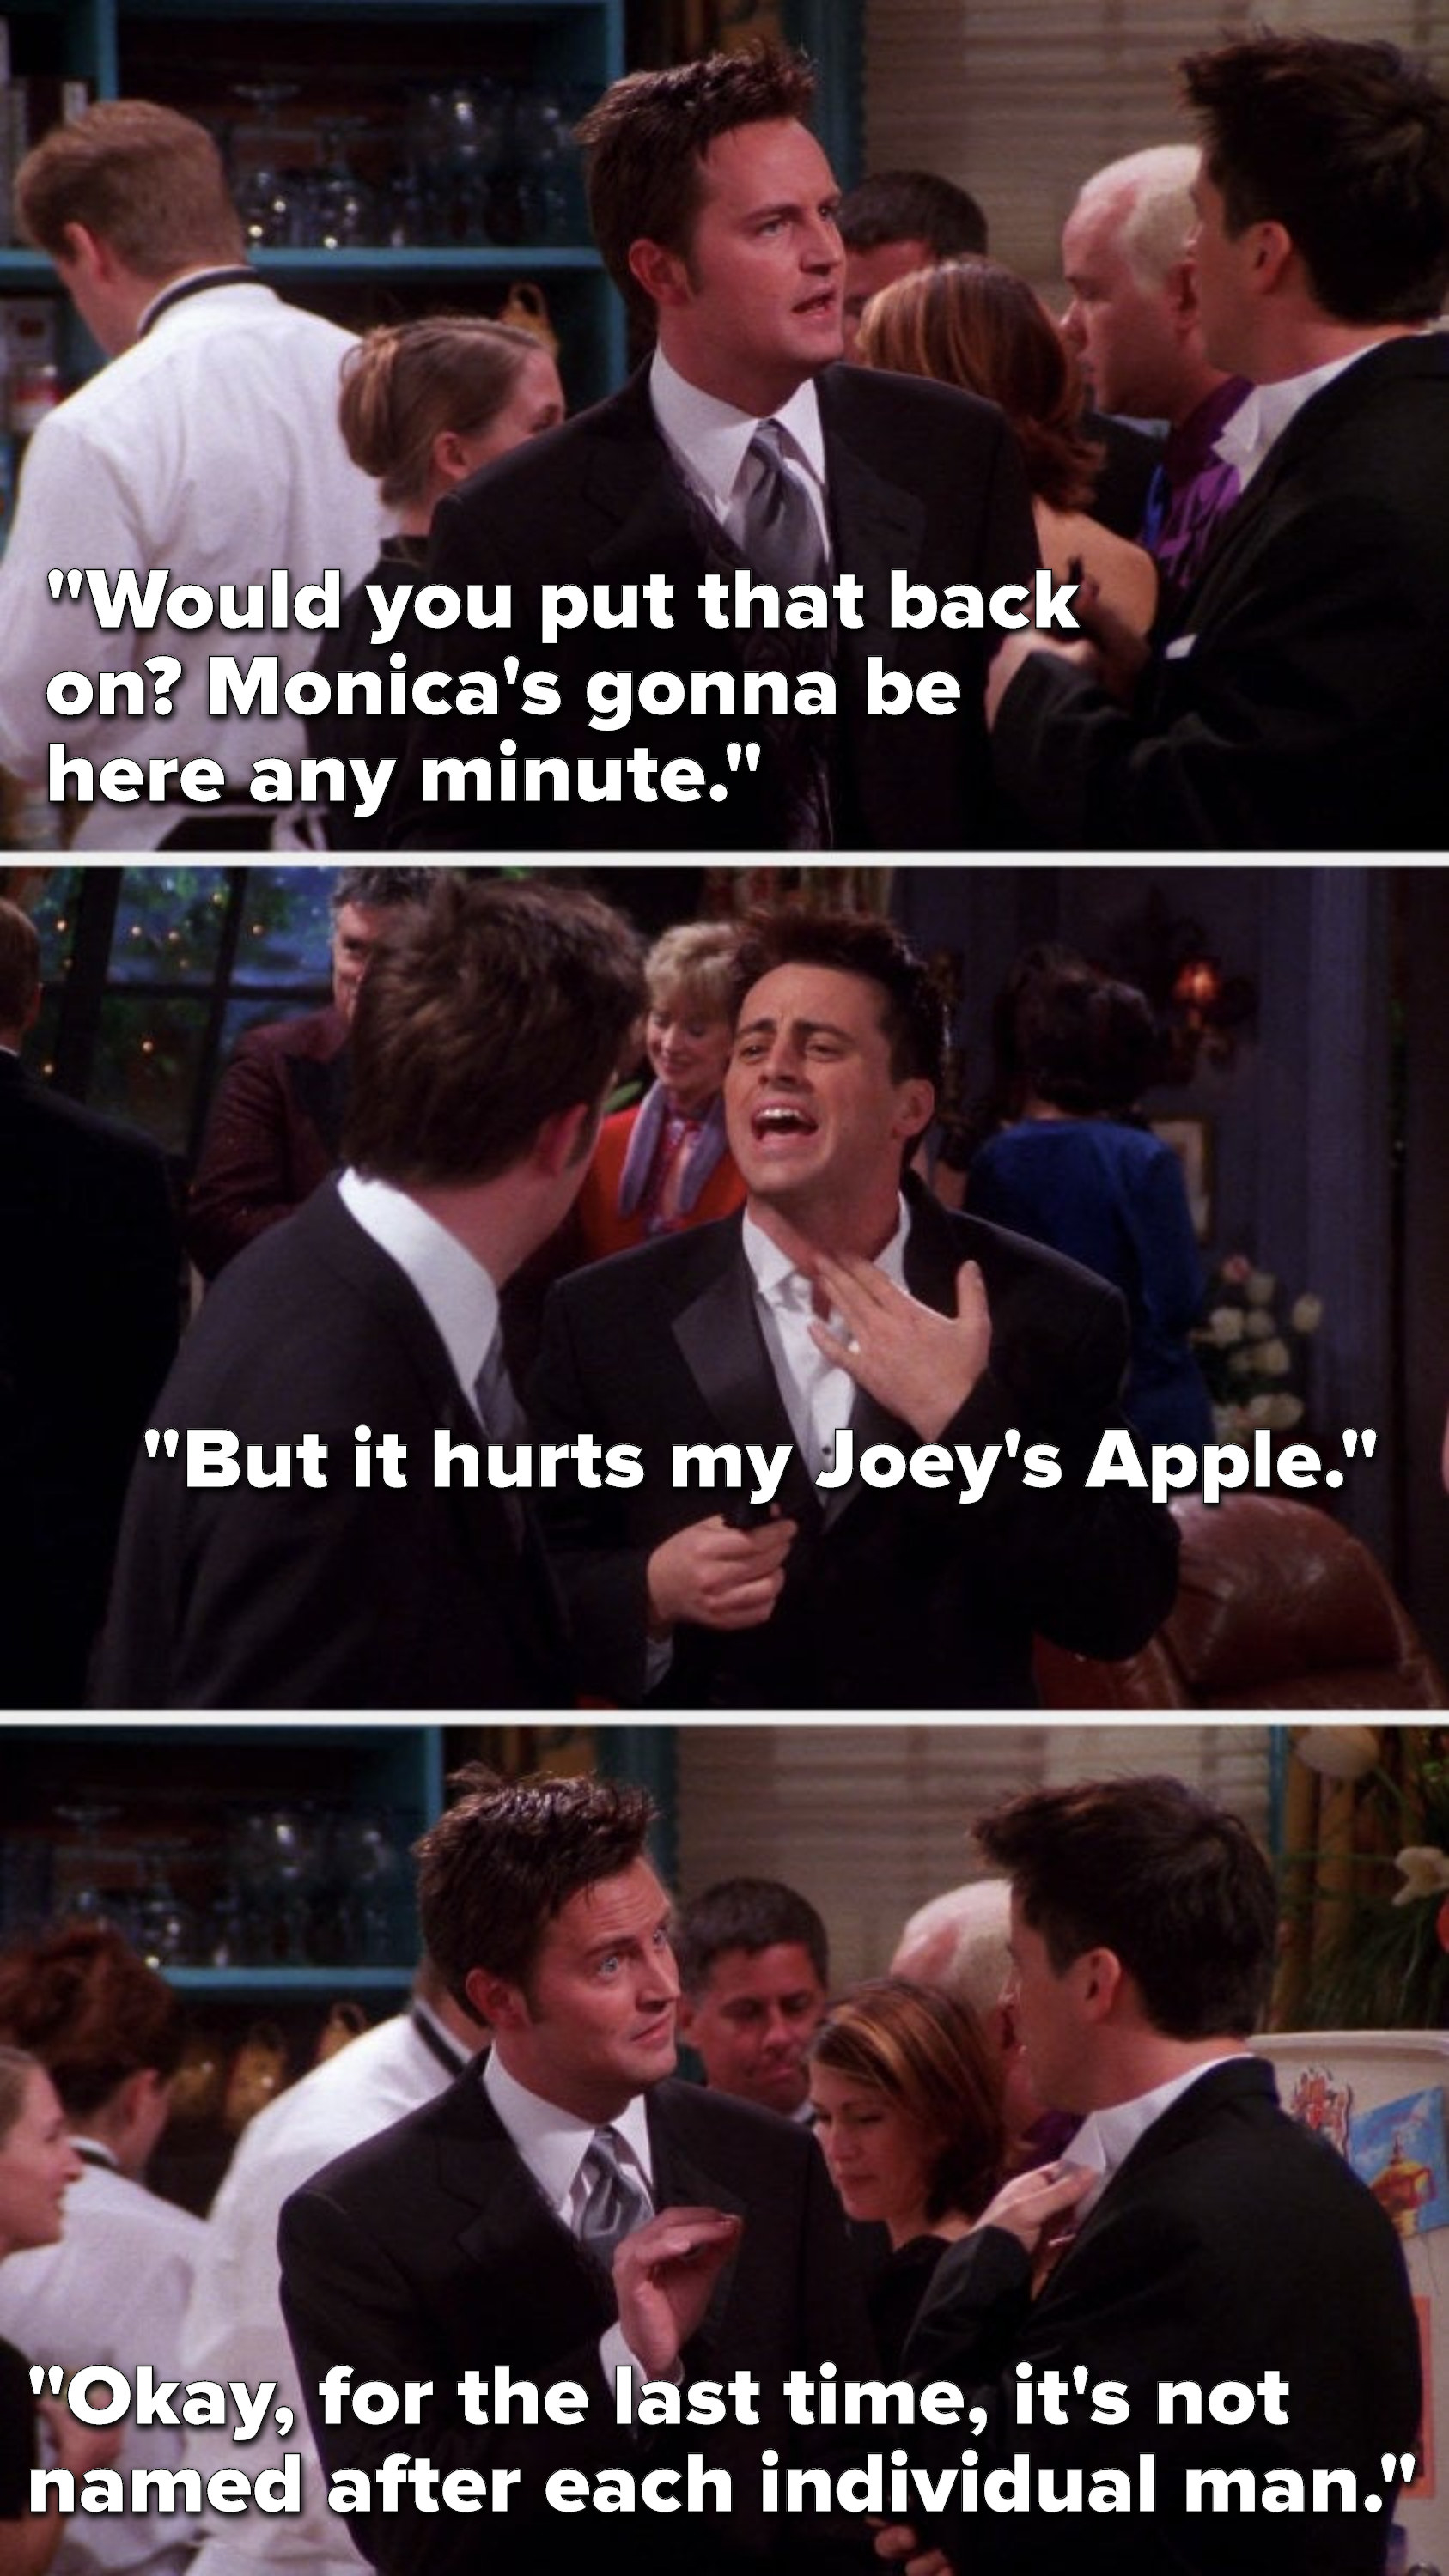 """Chandler says, """"Would you put that back on, Monica's gonna be here any minute,"""" Joey says, """"But it hurts my Joey's Apple,"""" and Chandler says, """"Okay, for the last time, it's not named after each individual man"""""""